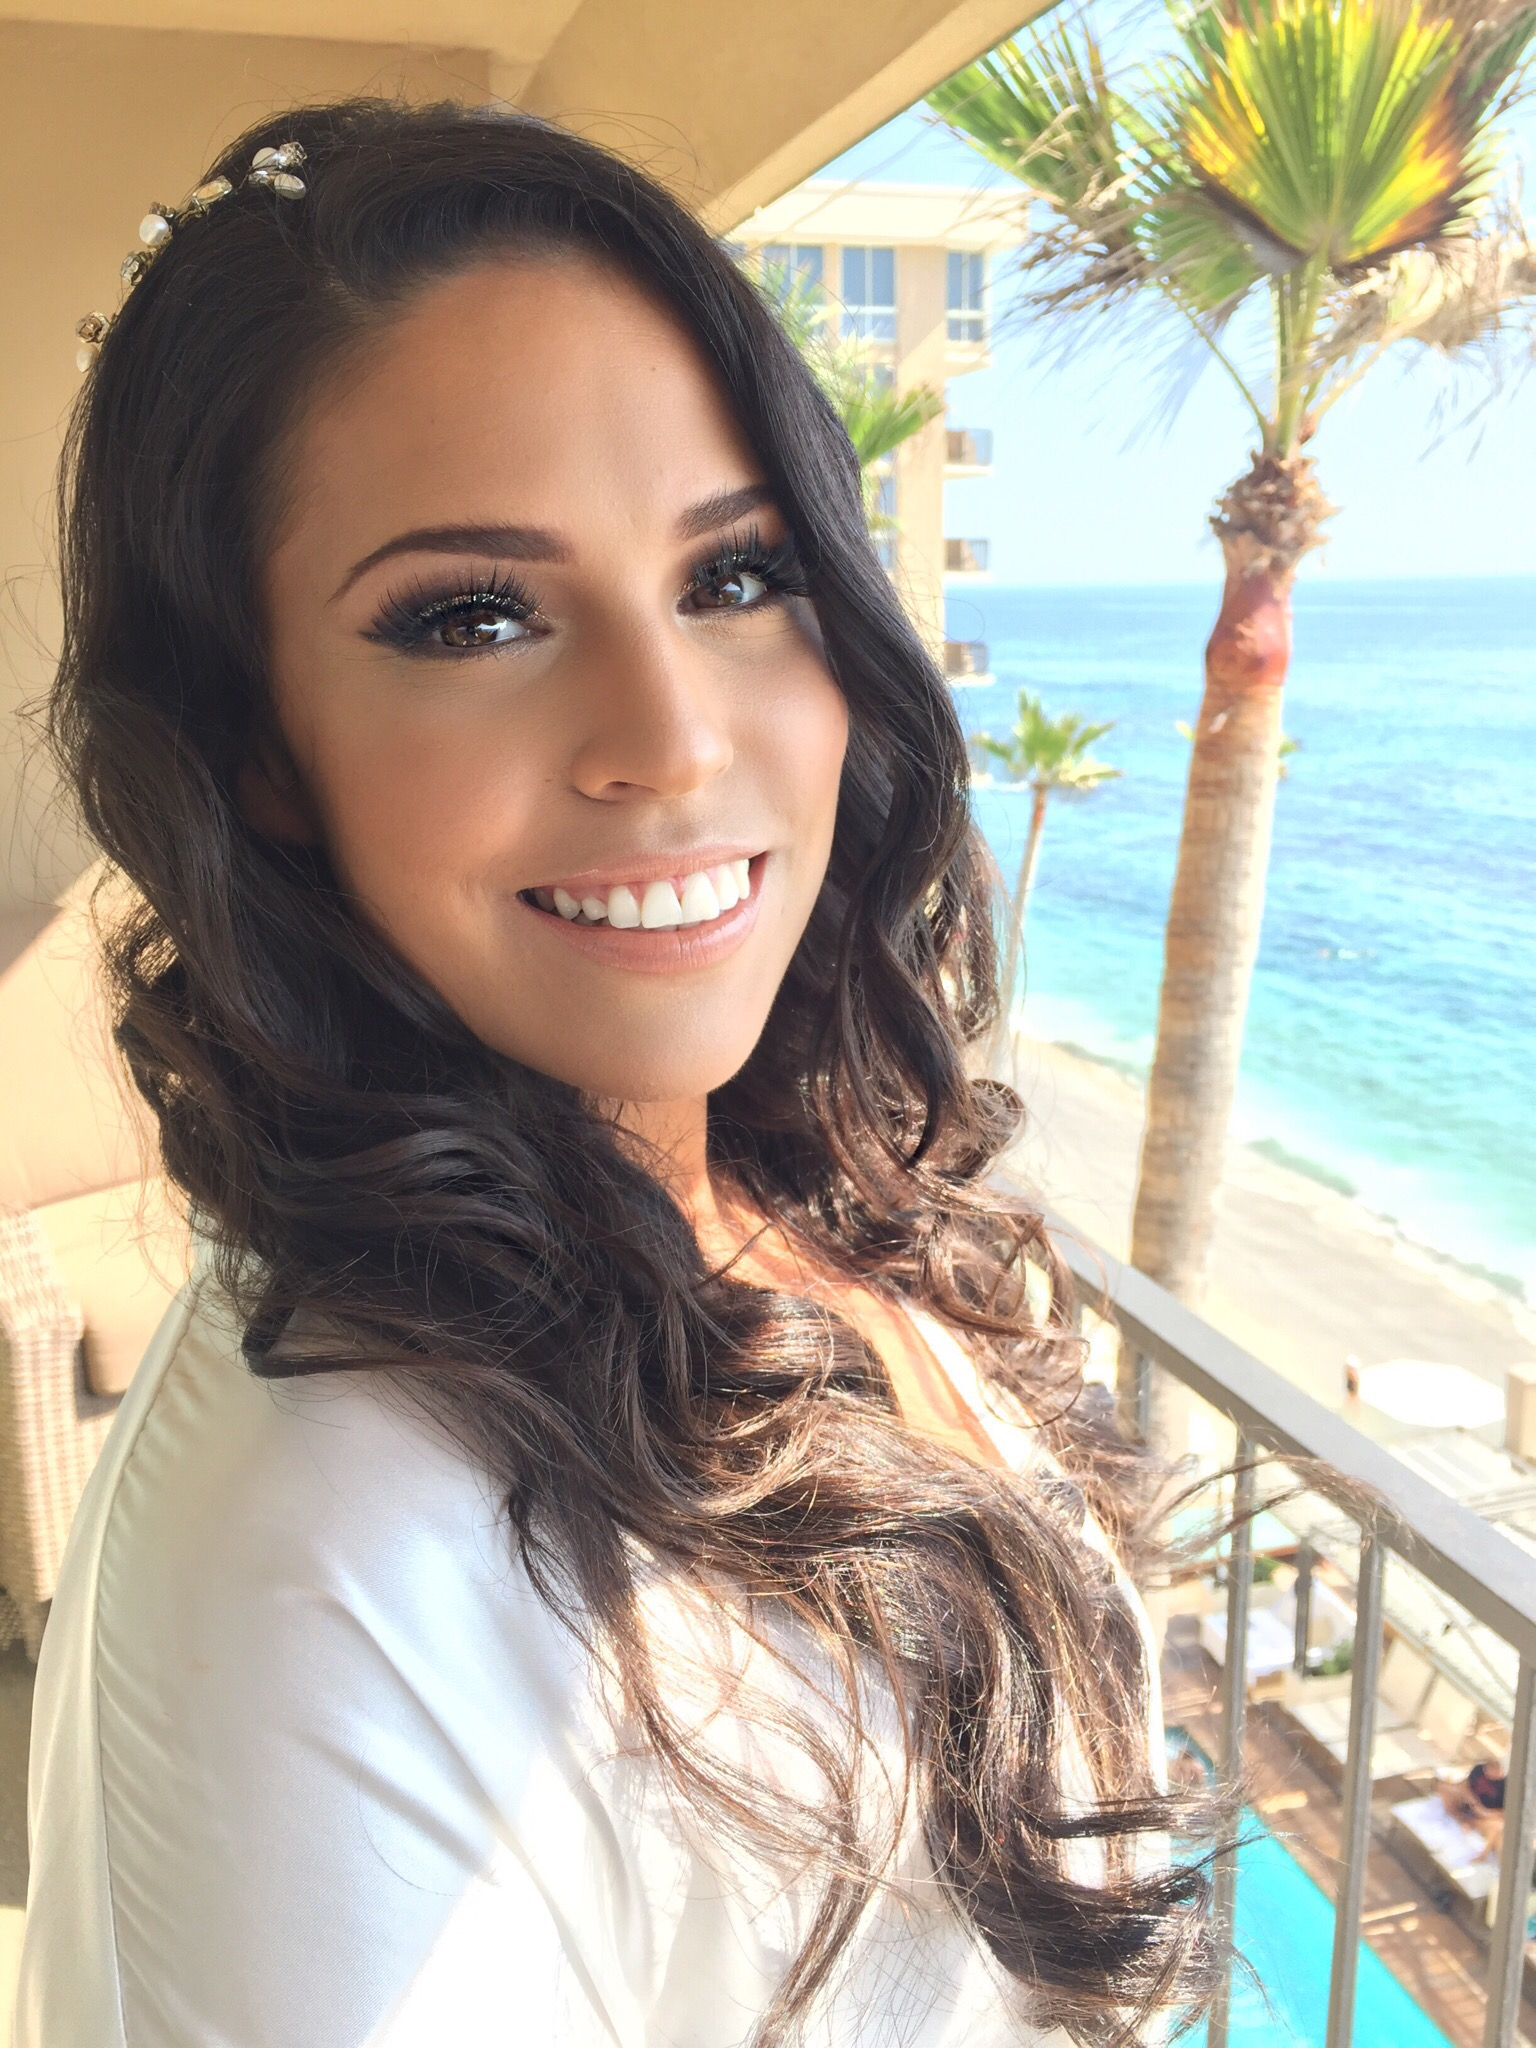 Brunette bridal makeup with sparkly smokey eye and curled hair down at Surf & Sand beach wedding in Laguna Beach. Wedding day Hair and Makeup by Vanity Belle in Orange County (Costa Mesa) and San Diego (La Jolla)